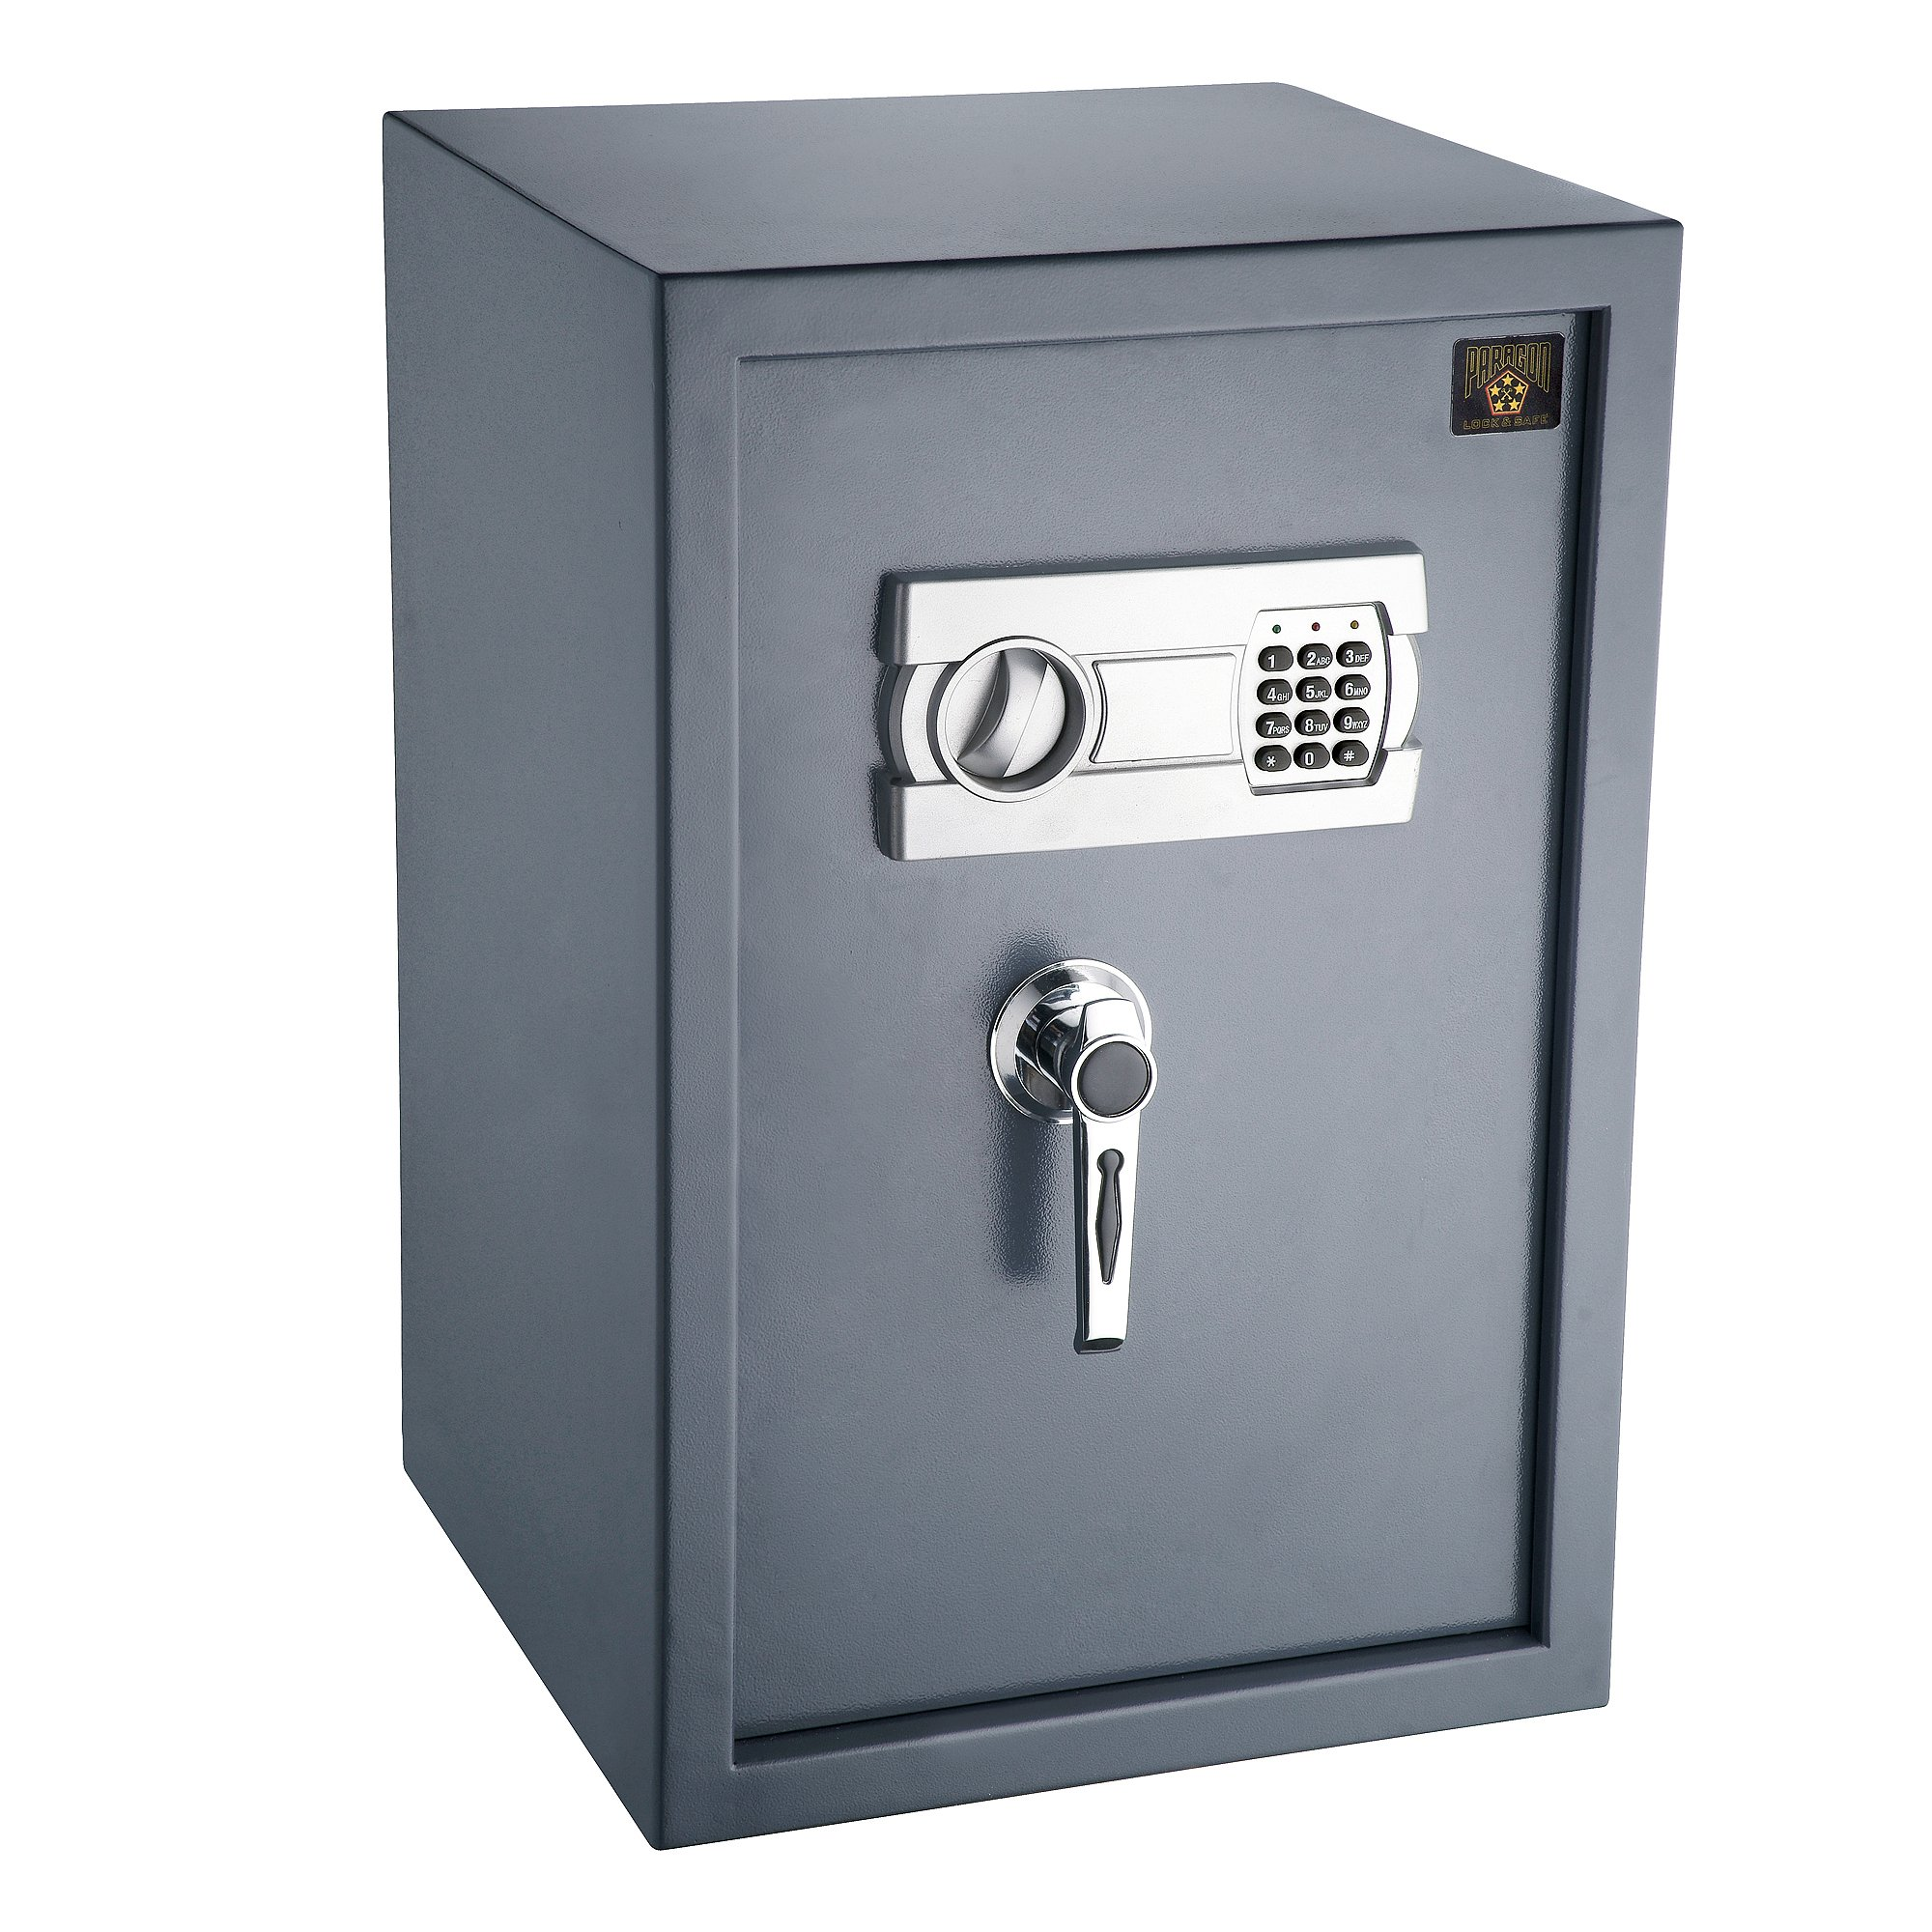 7803 Paragon Lock & Safe ParaGuard Deluxe Electronic Digital Safe Home Security by Paragon Lock and Safe